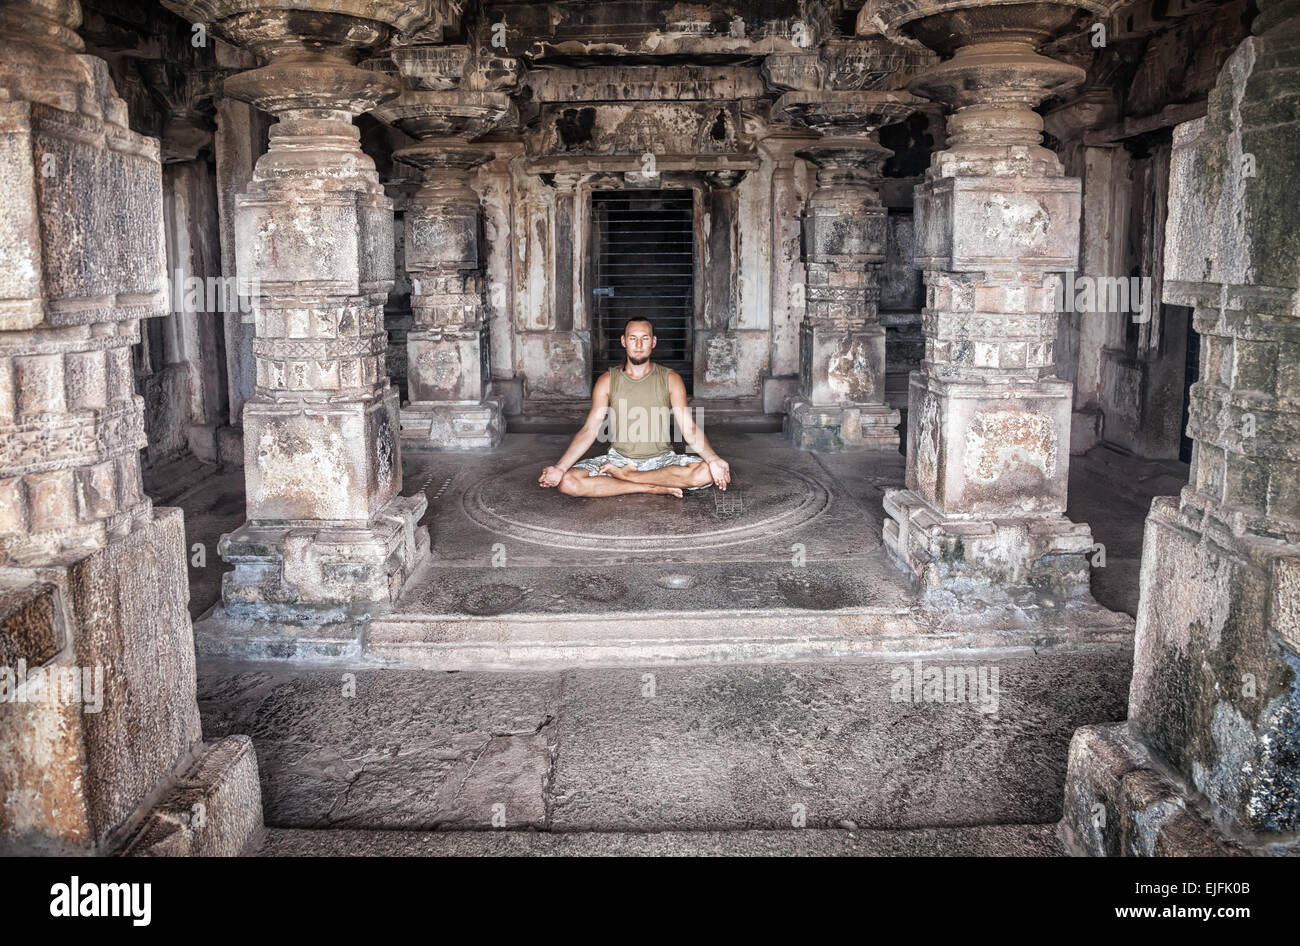 Mann tut Meditation in antiken Tempel mit carving Spalten in Hampi, Karnataka, Indien Stockbild